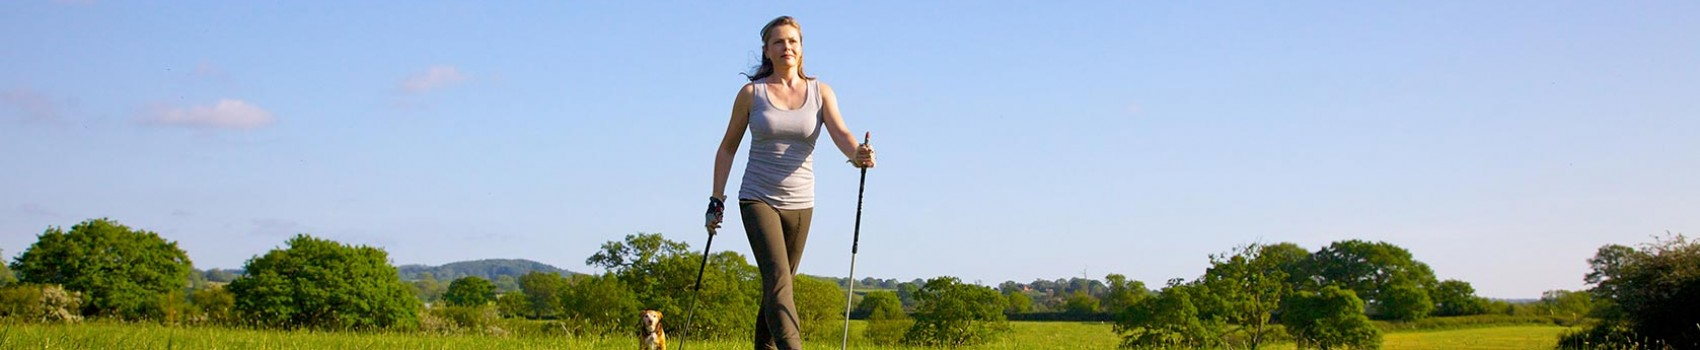 Liz Earle nordic walking